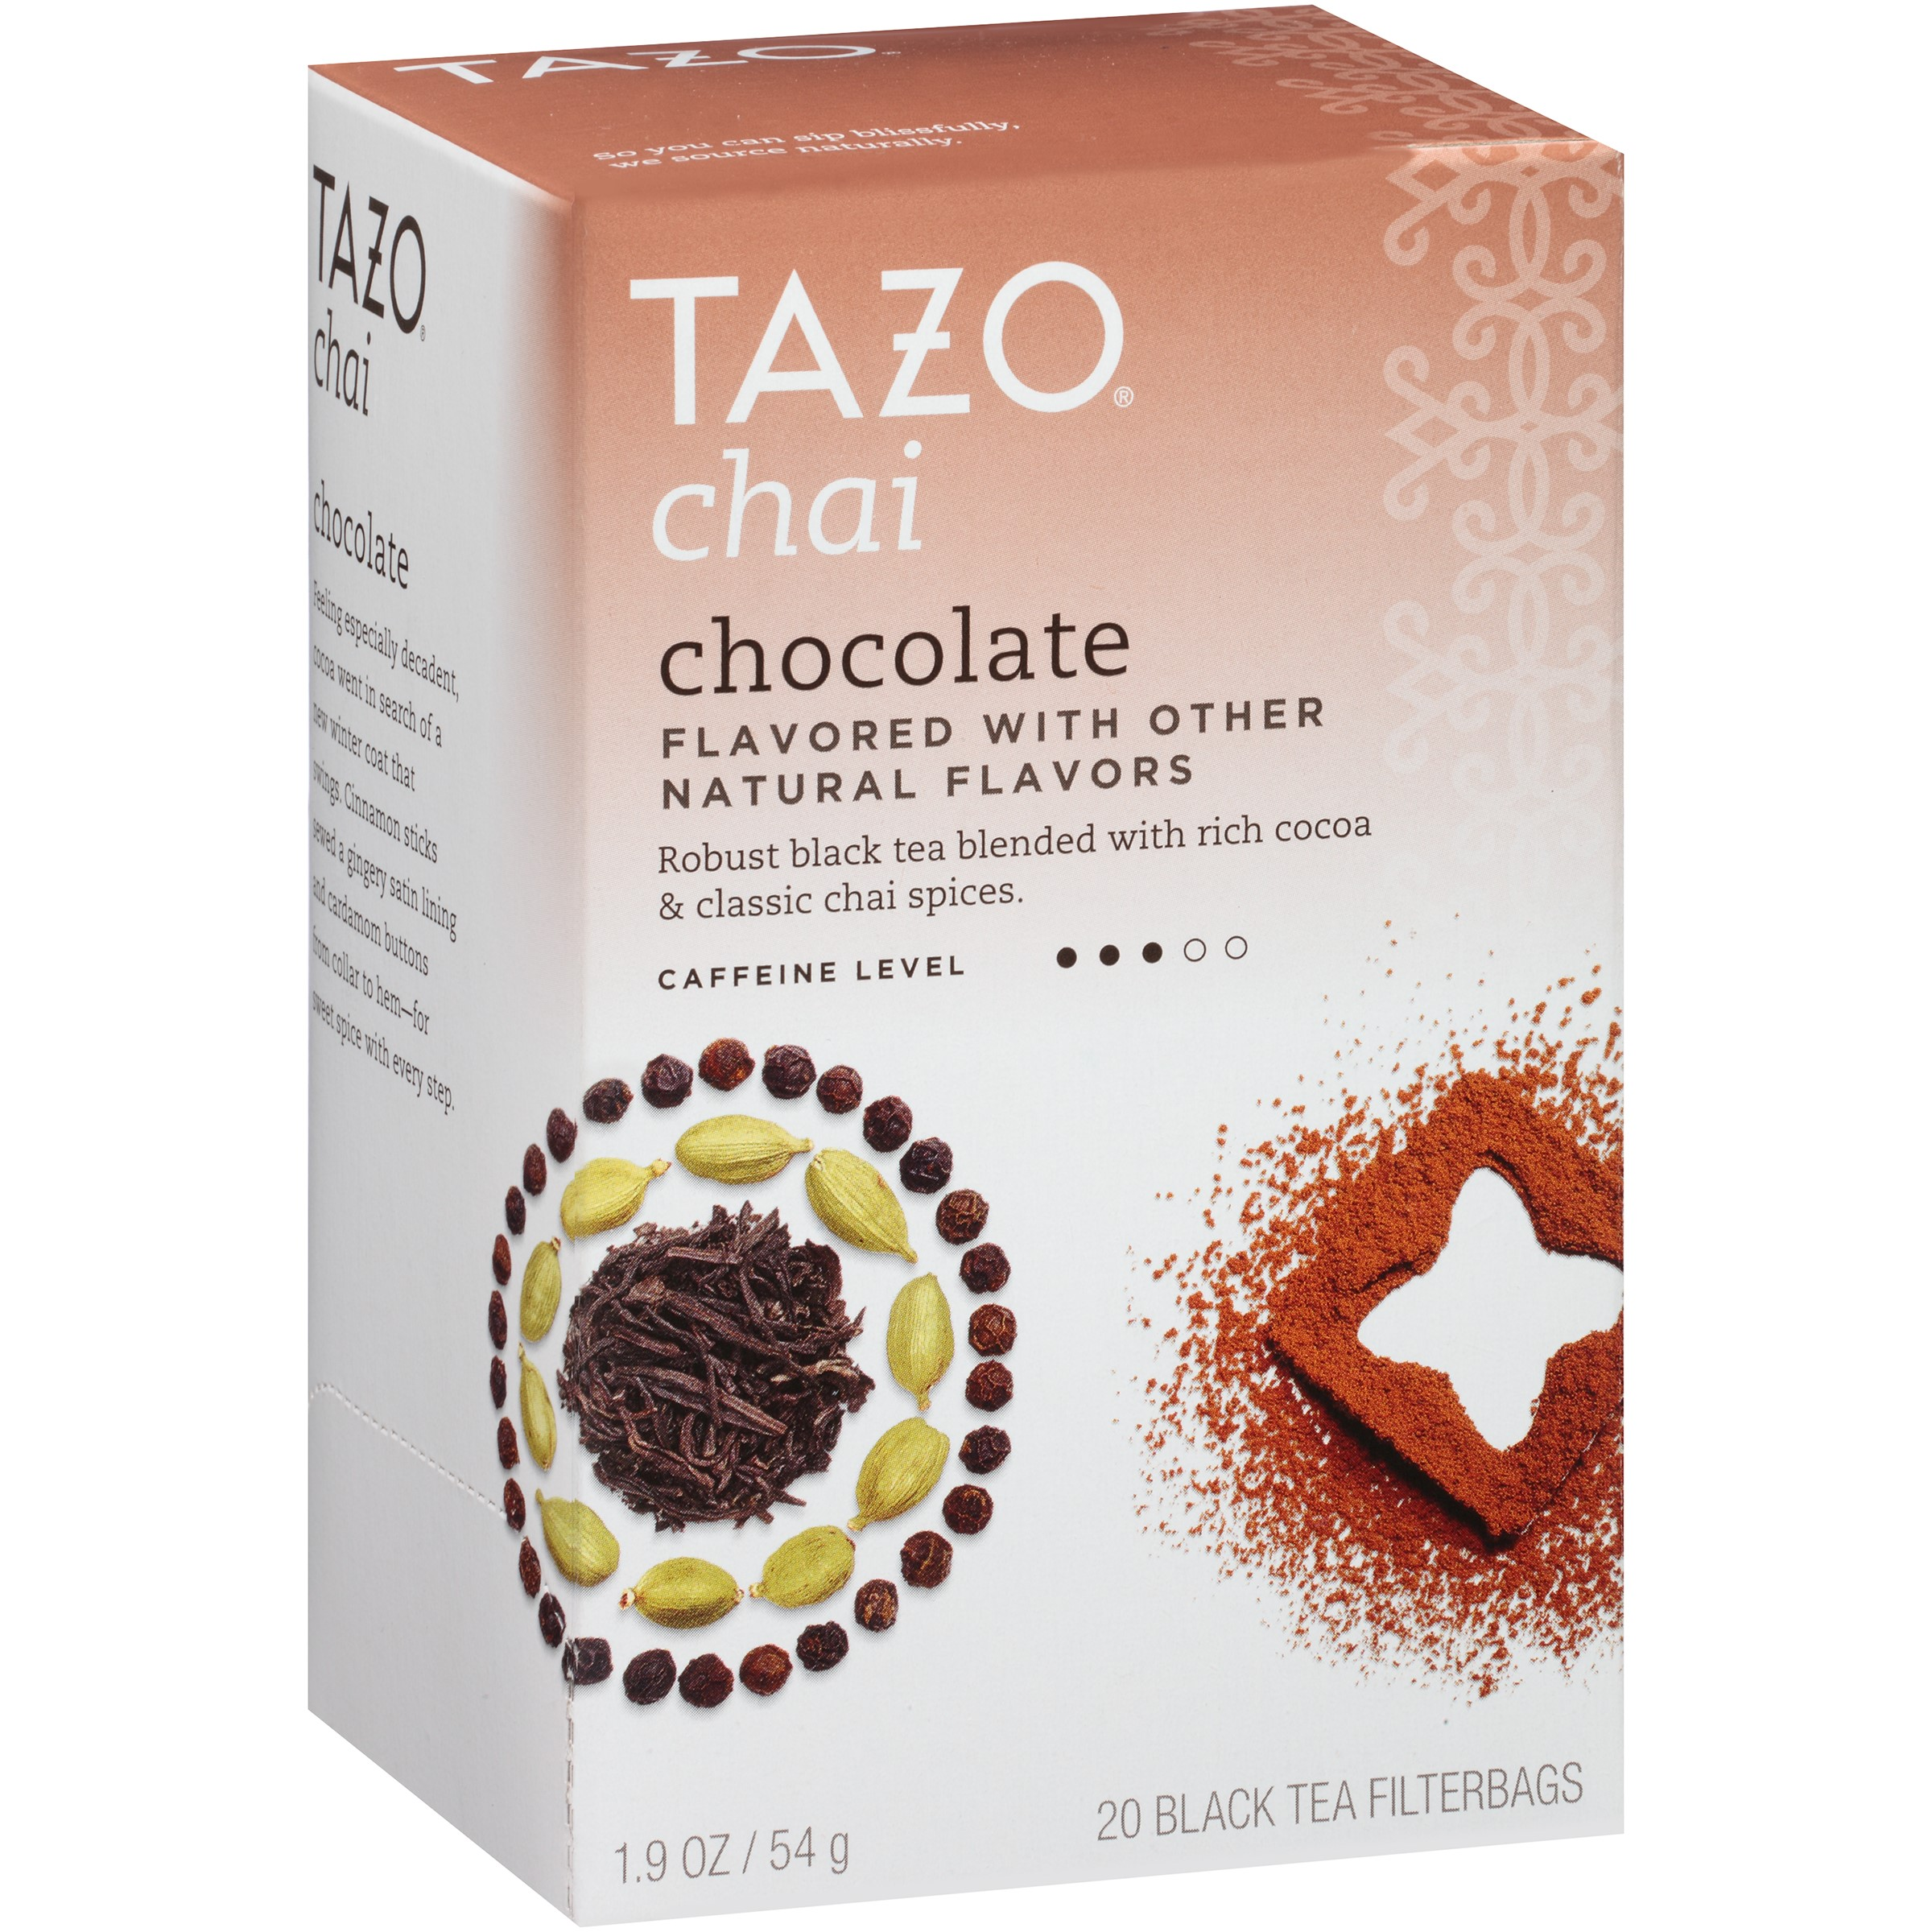 (6 Pack) Tazo Chai Chocolate Black Tea Filterbags, 20 Count, 1.9 Ounce